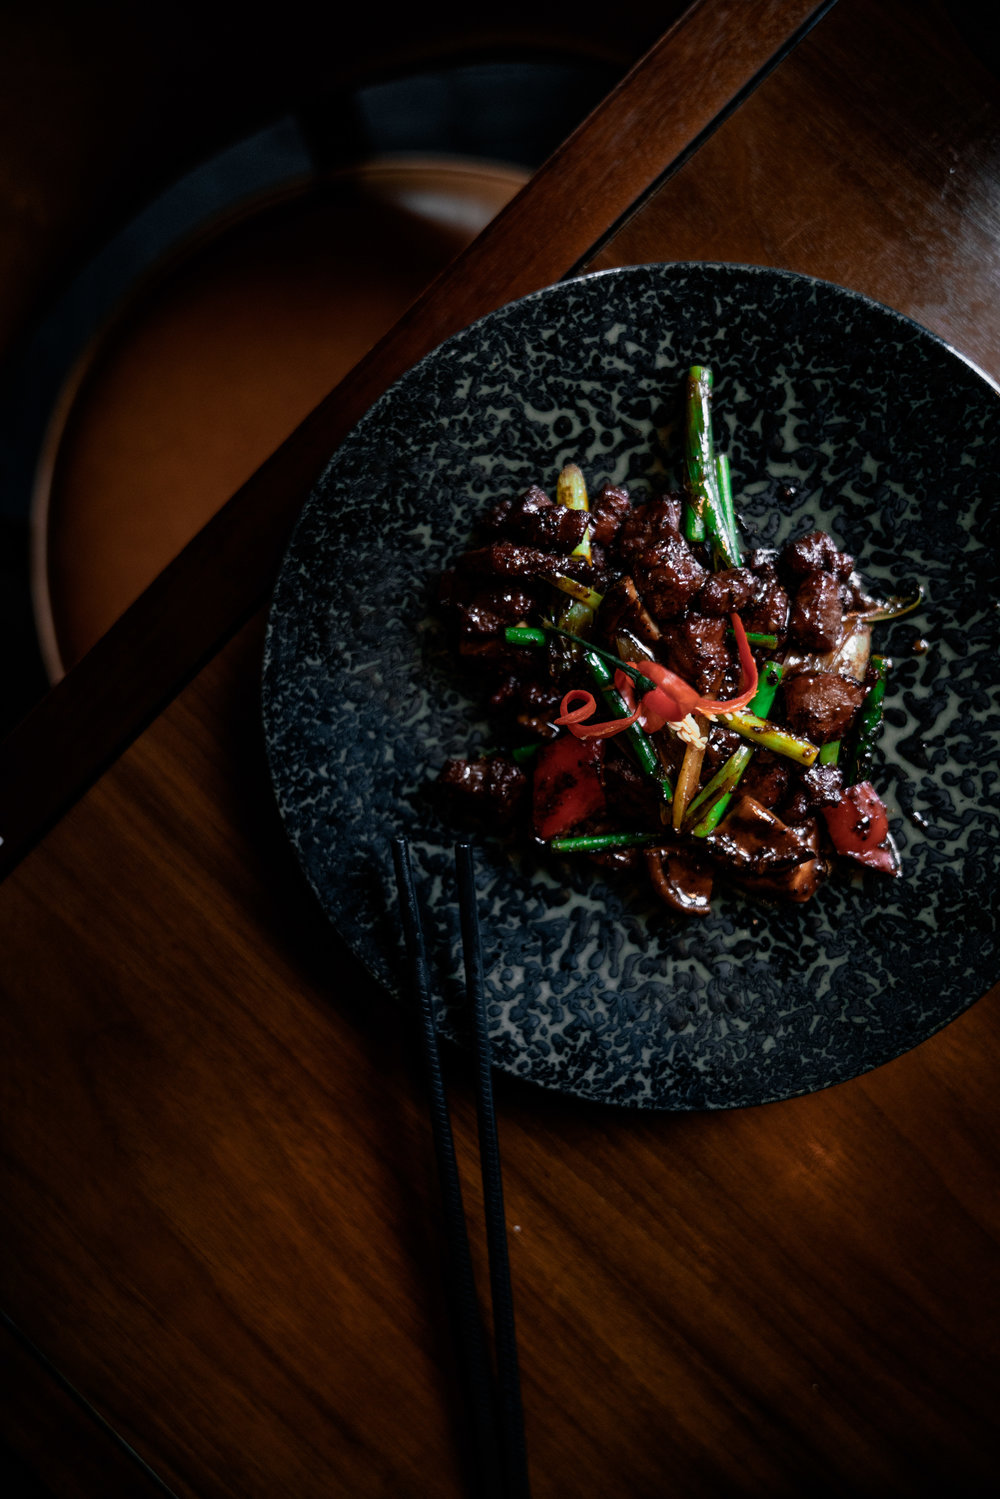 Wok fried Hereford beef fillet in spicy black pepper sauce